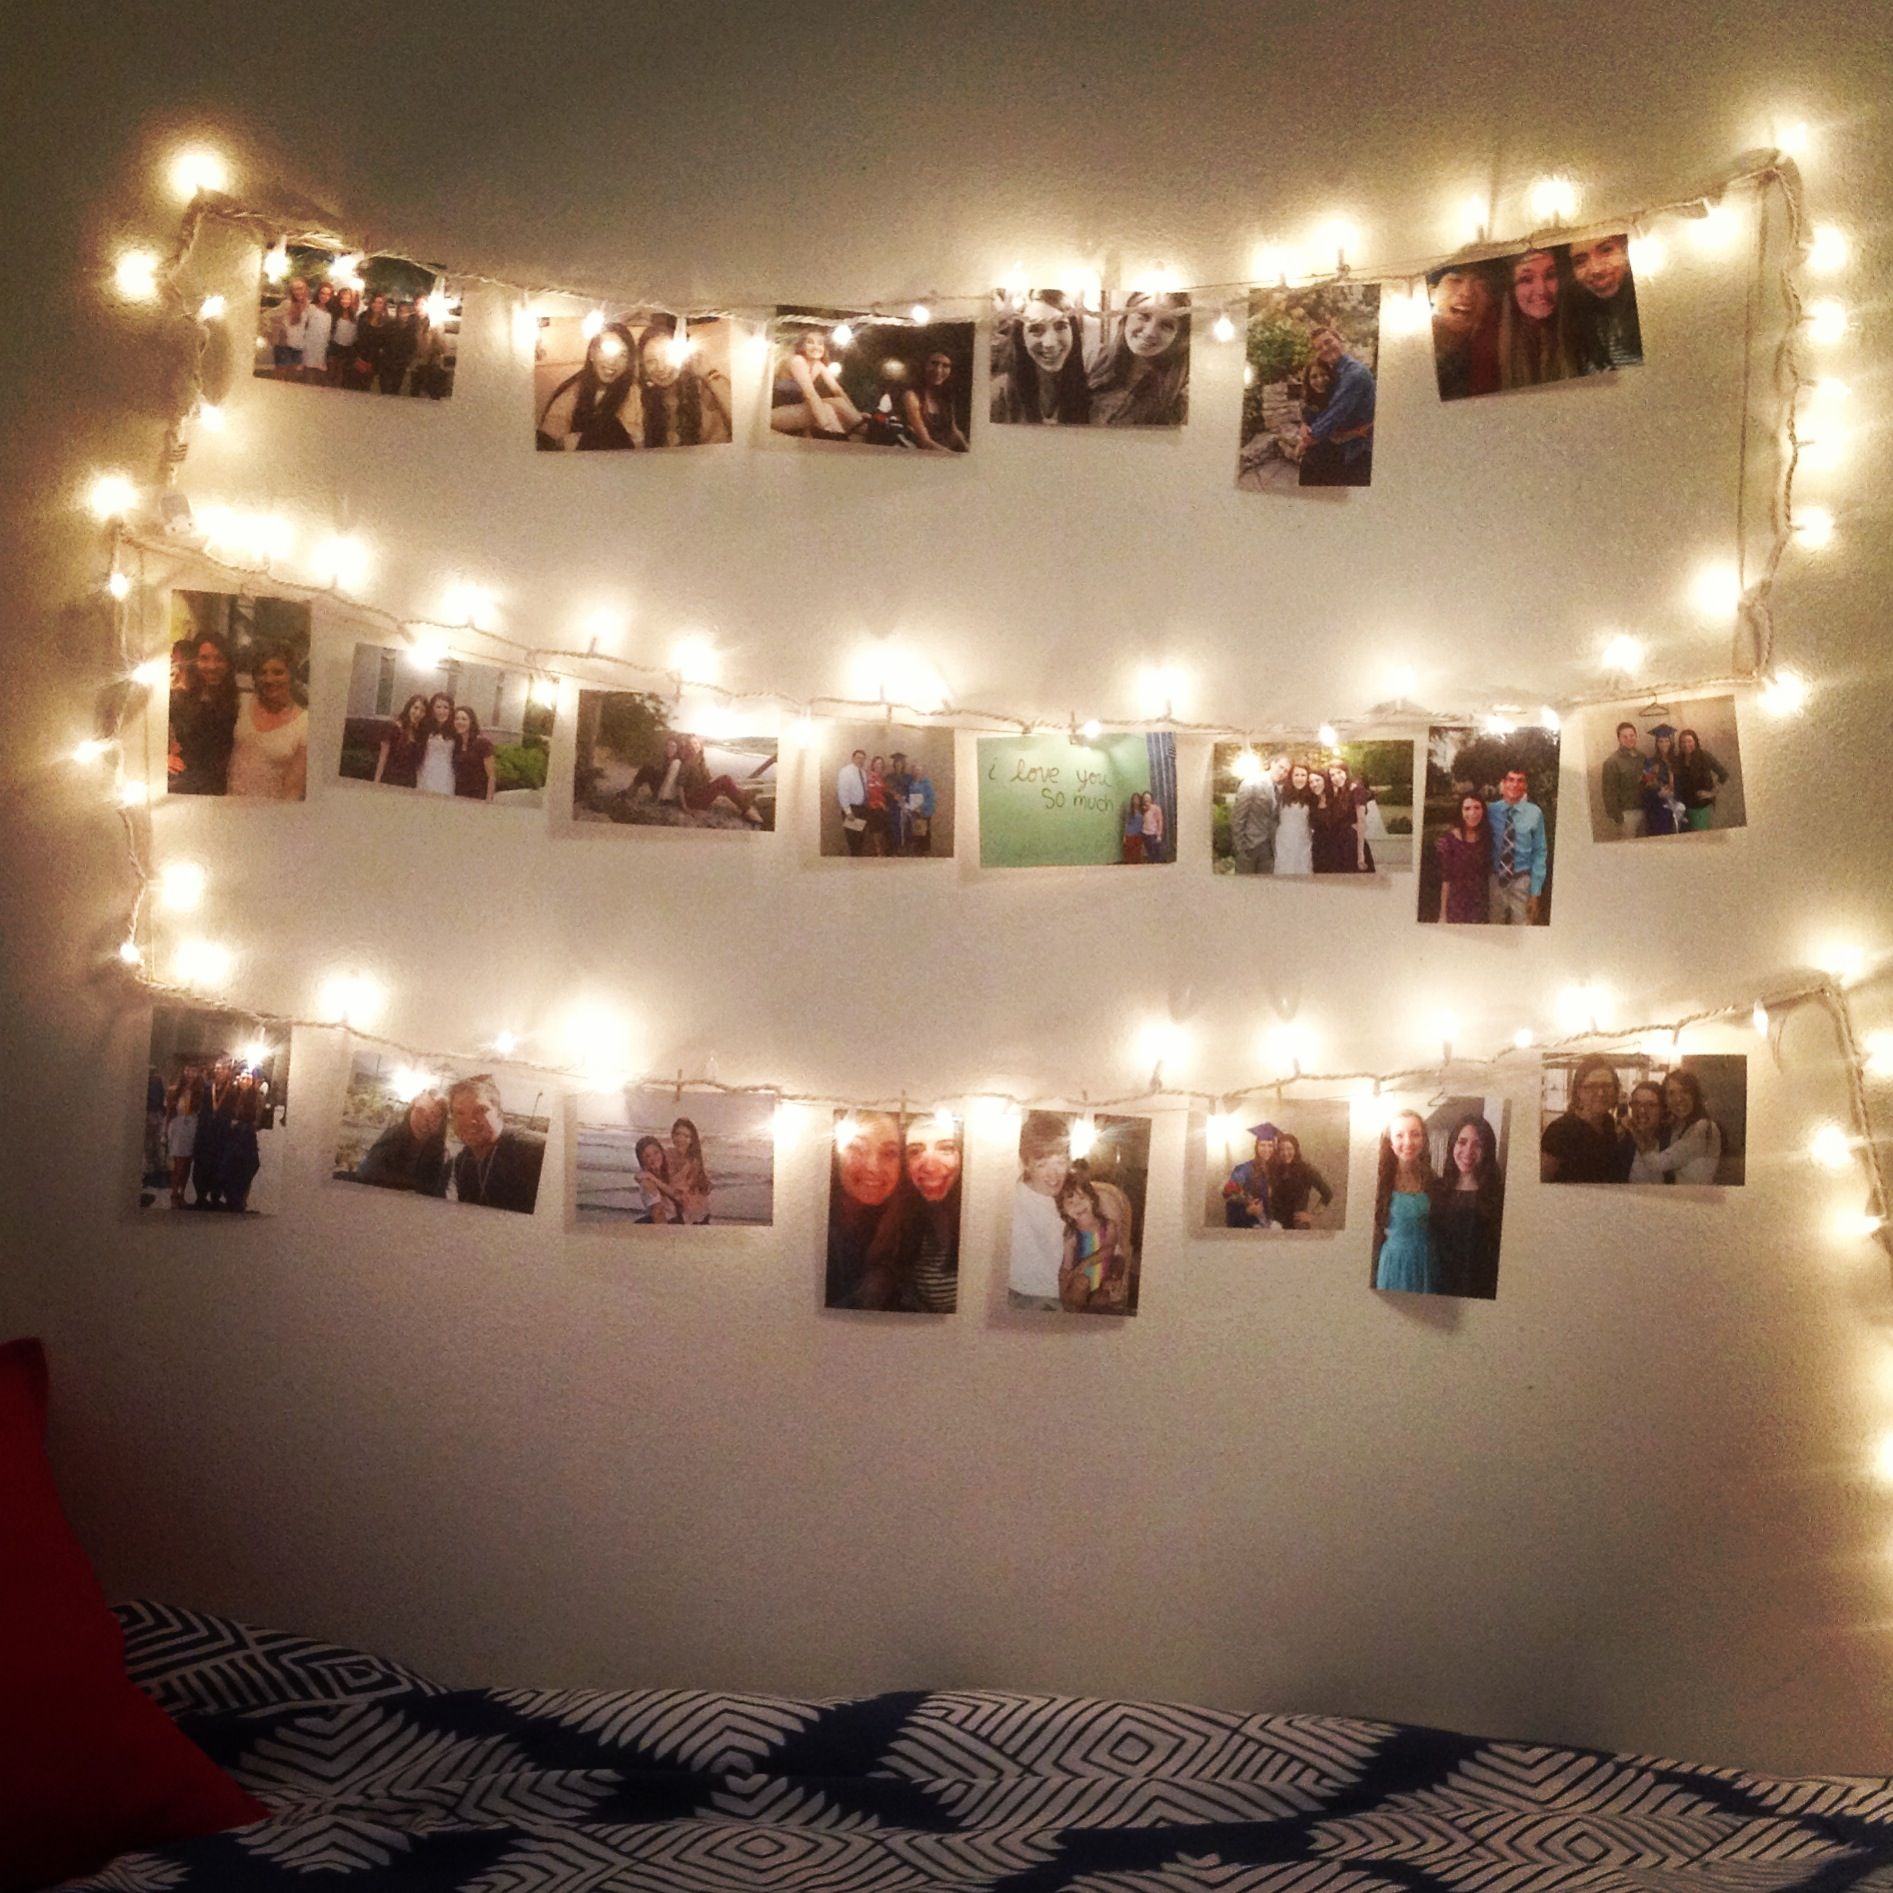 Luces Para Dormitorio My Dorm Room Lights And Pictures Display Diseño